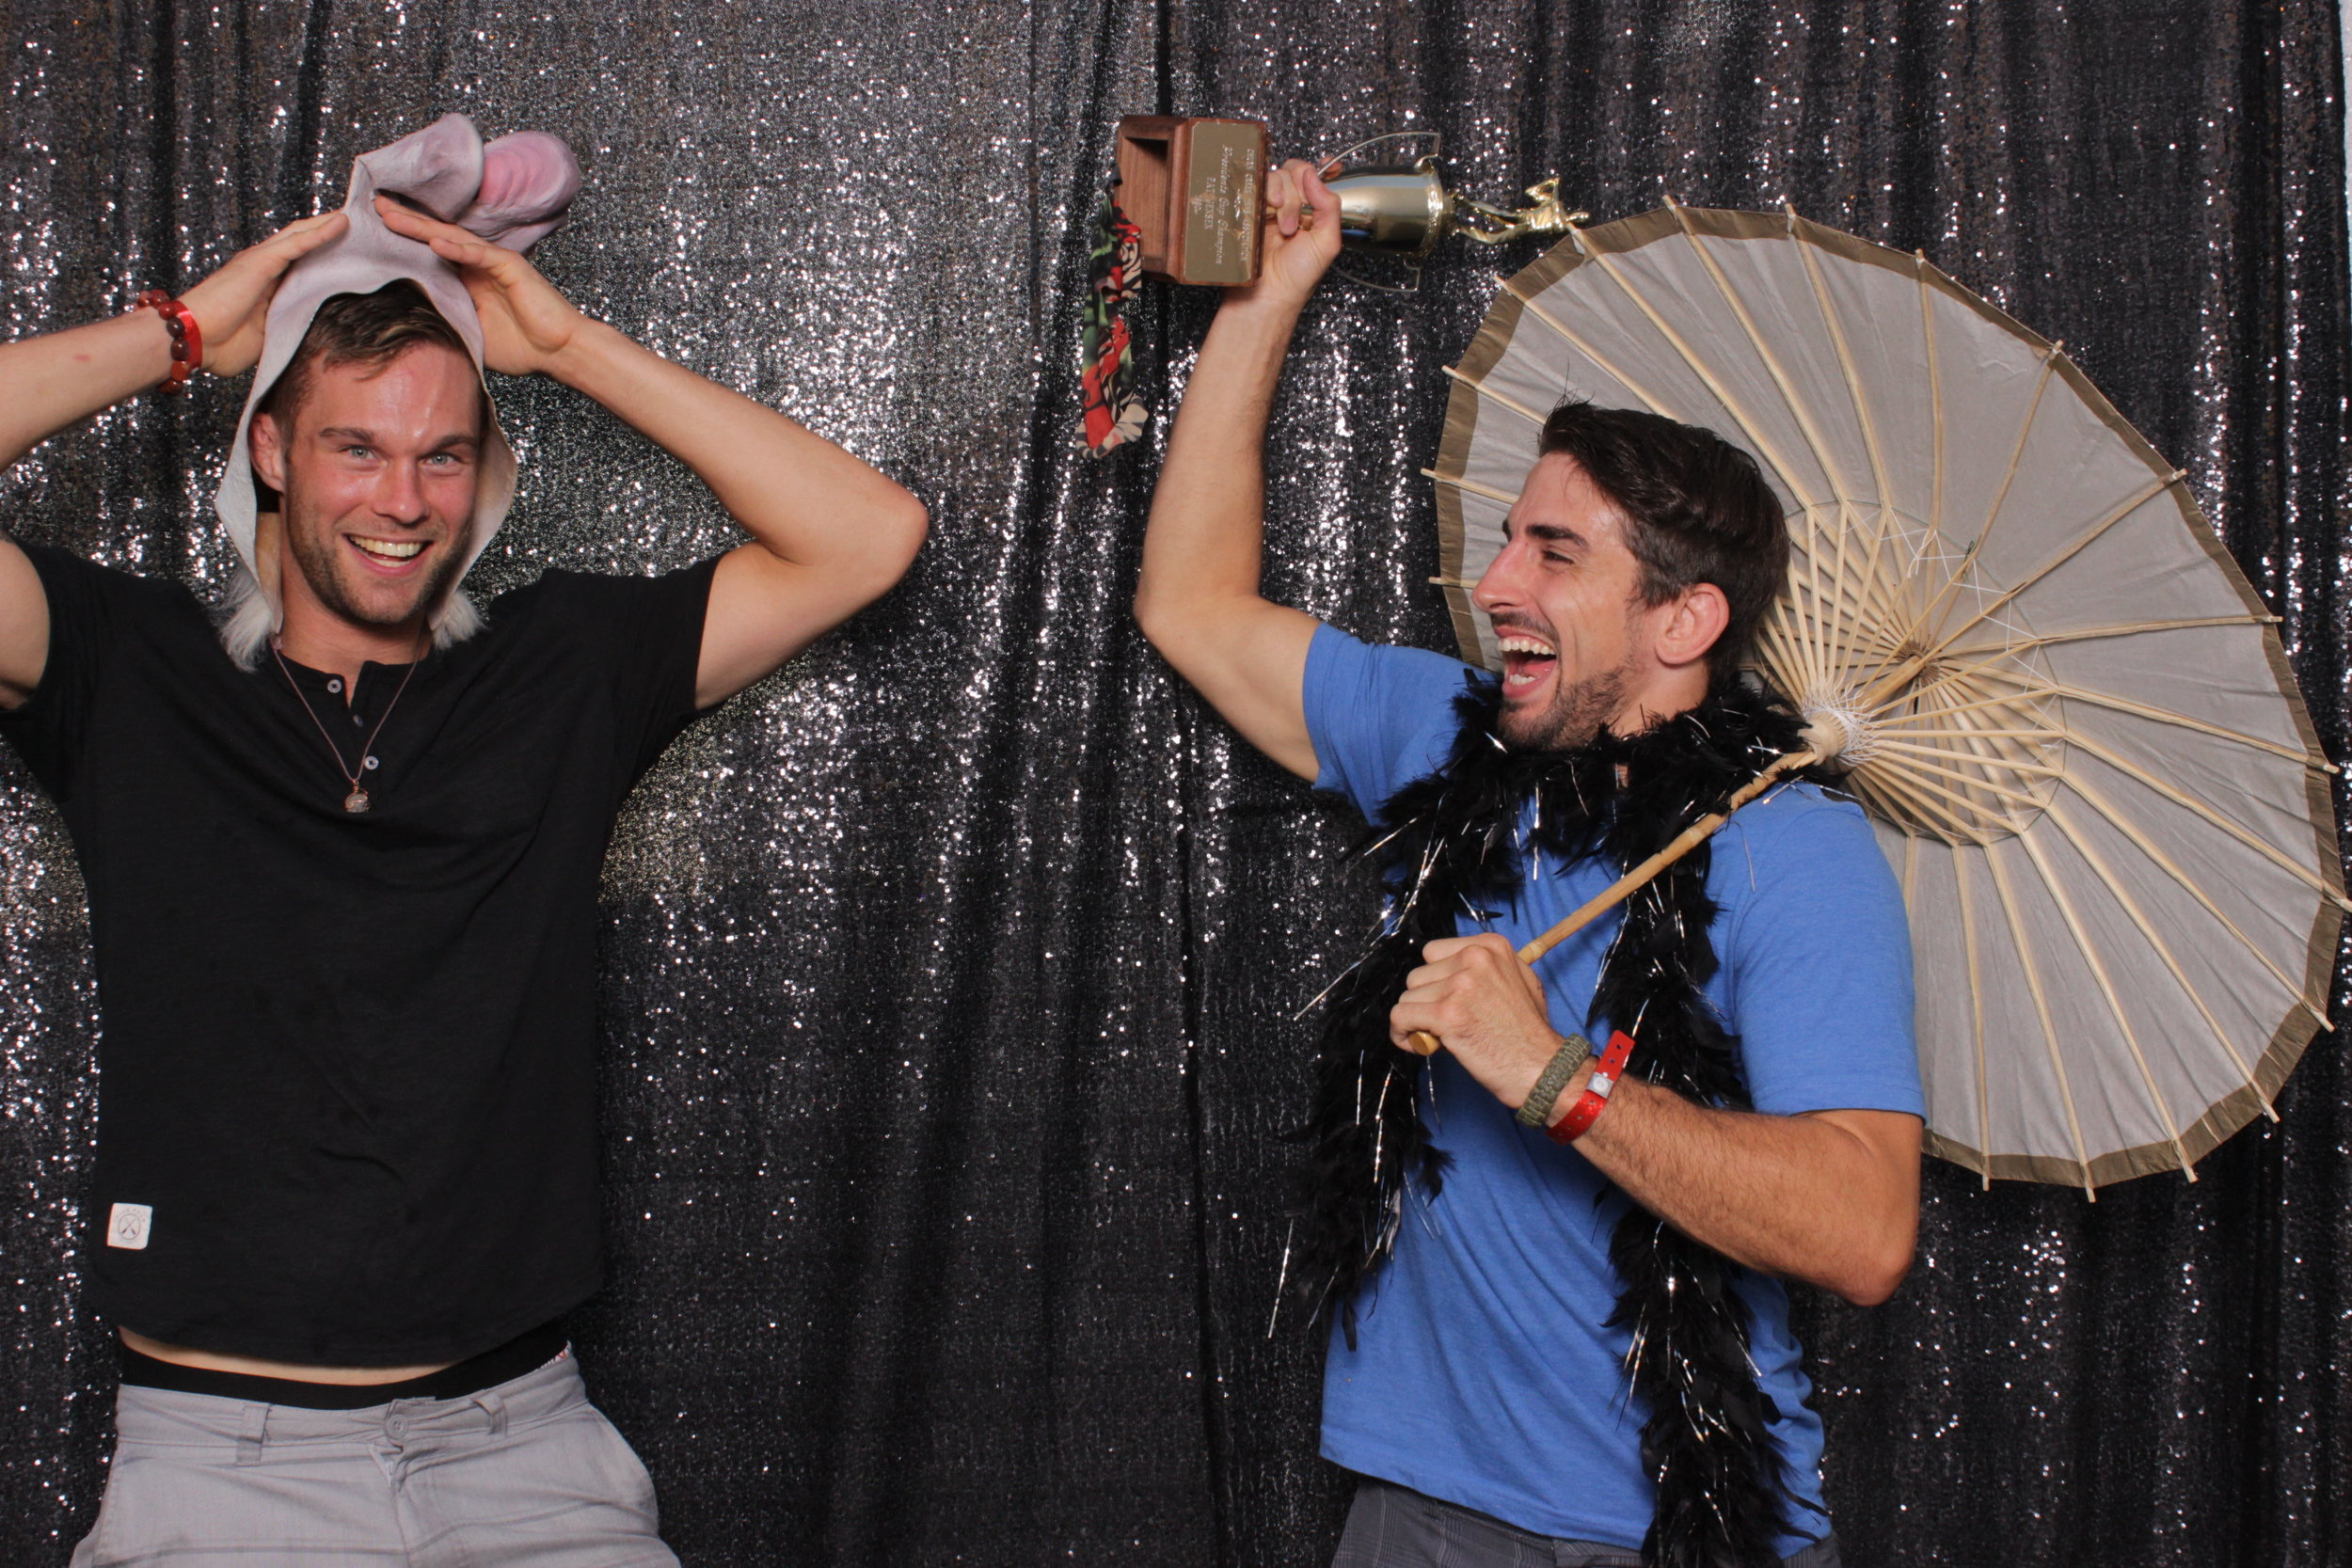 build-corporate-party-photo-booth-rental-battle-bros